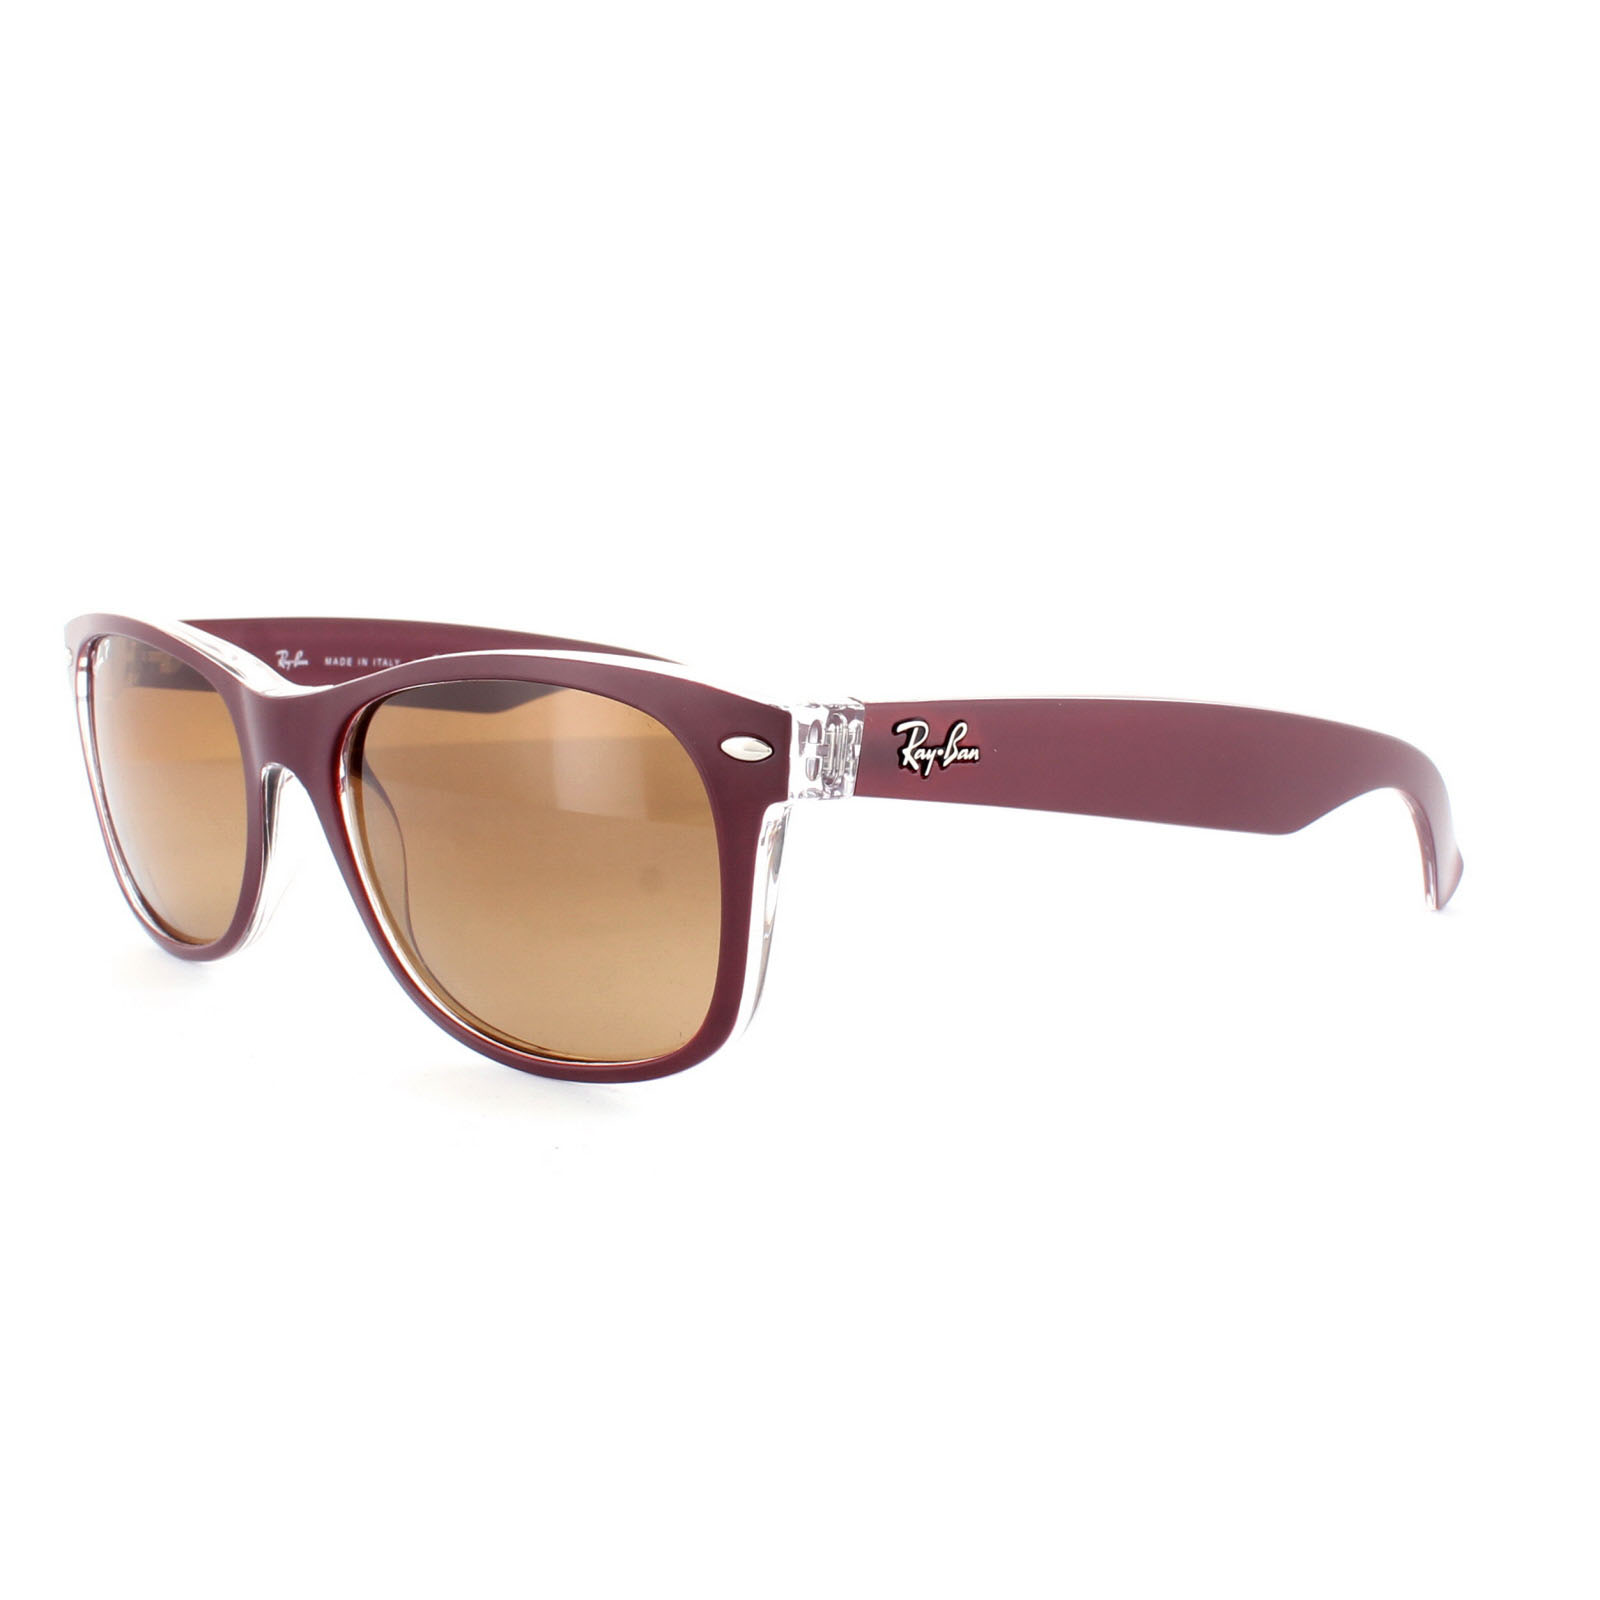 a9d0be5acc Ray Ban 2132 Polarized Review « Heritage Malta